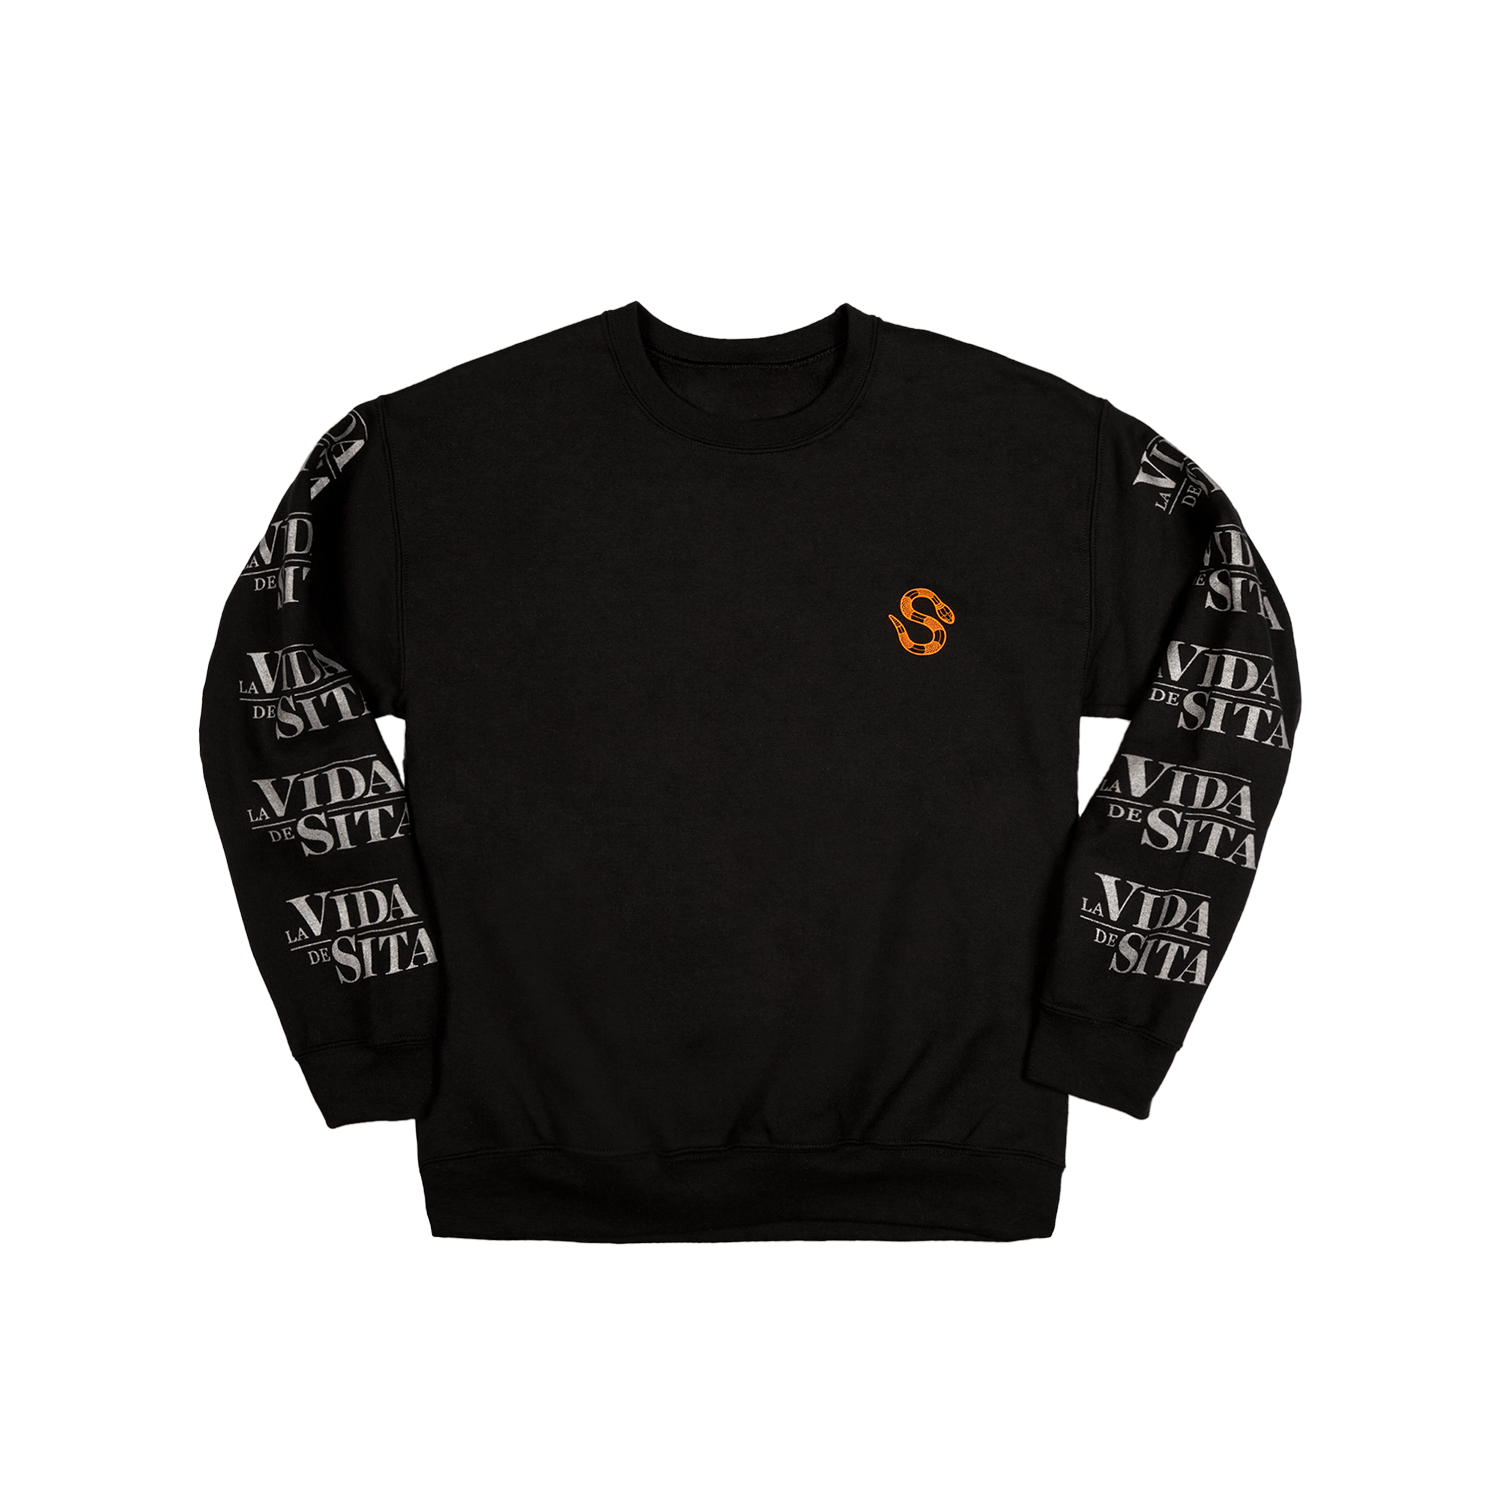 La Vida de Sita black Crewneck Long-sleeved back printed